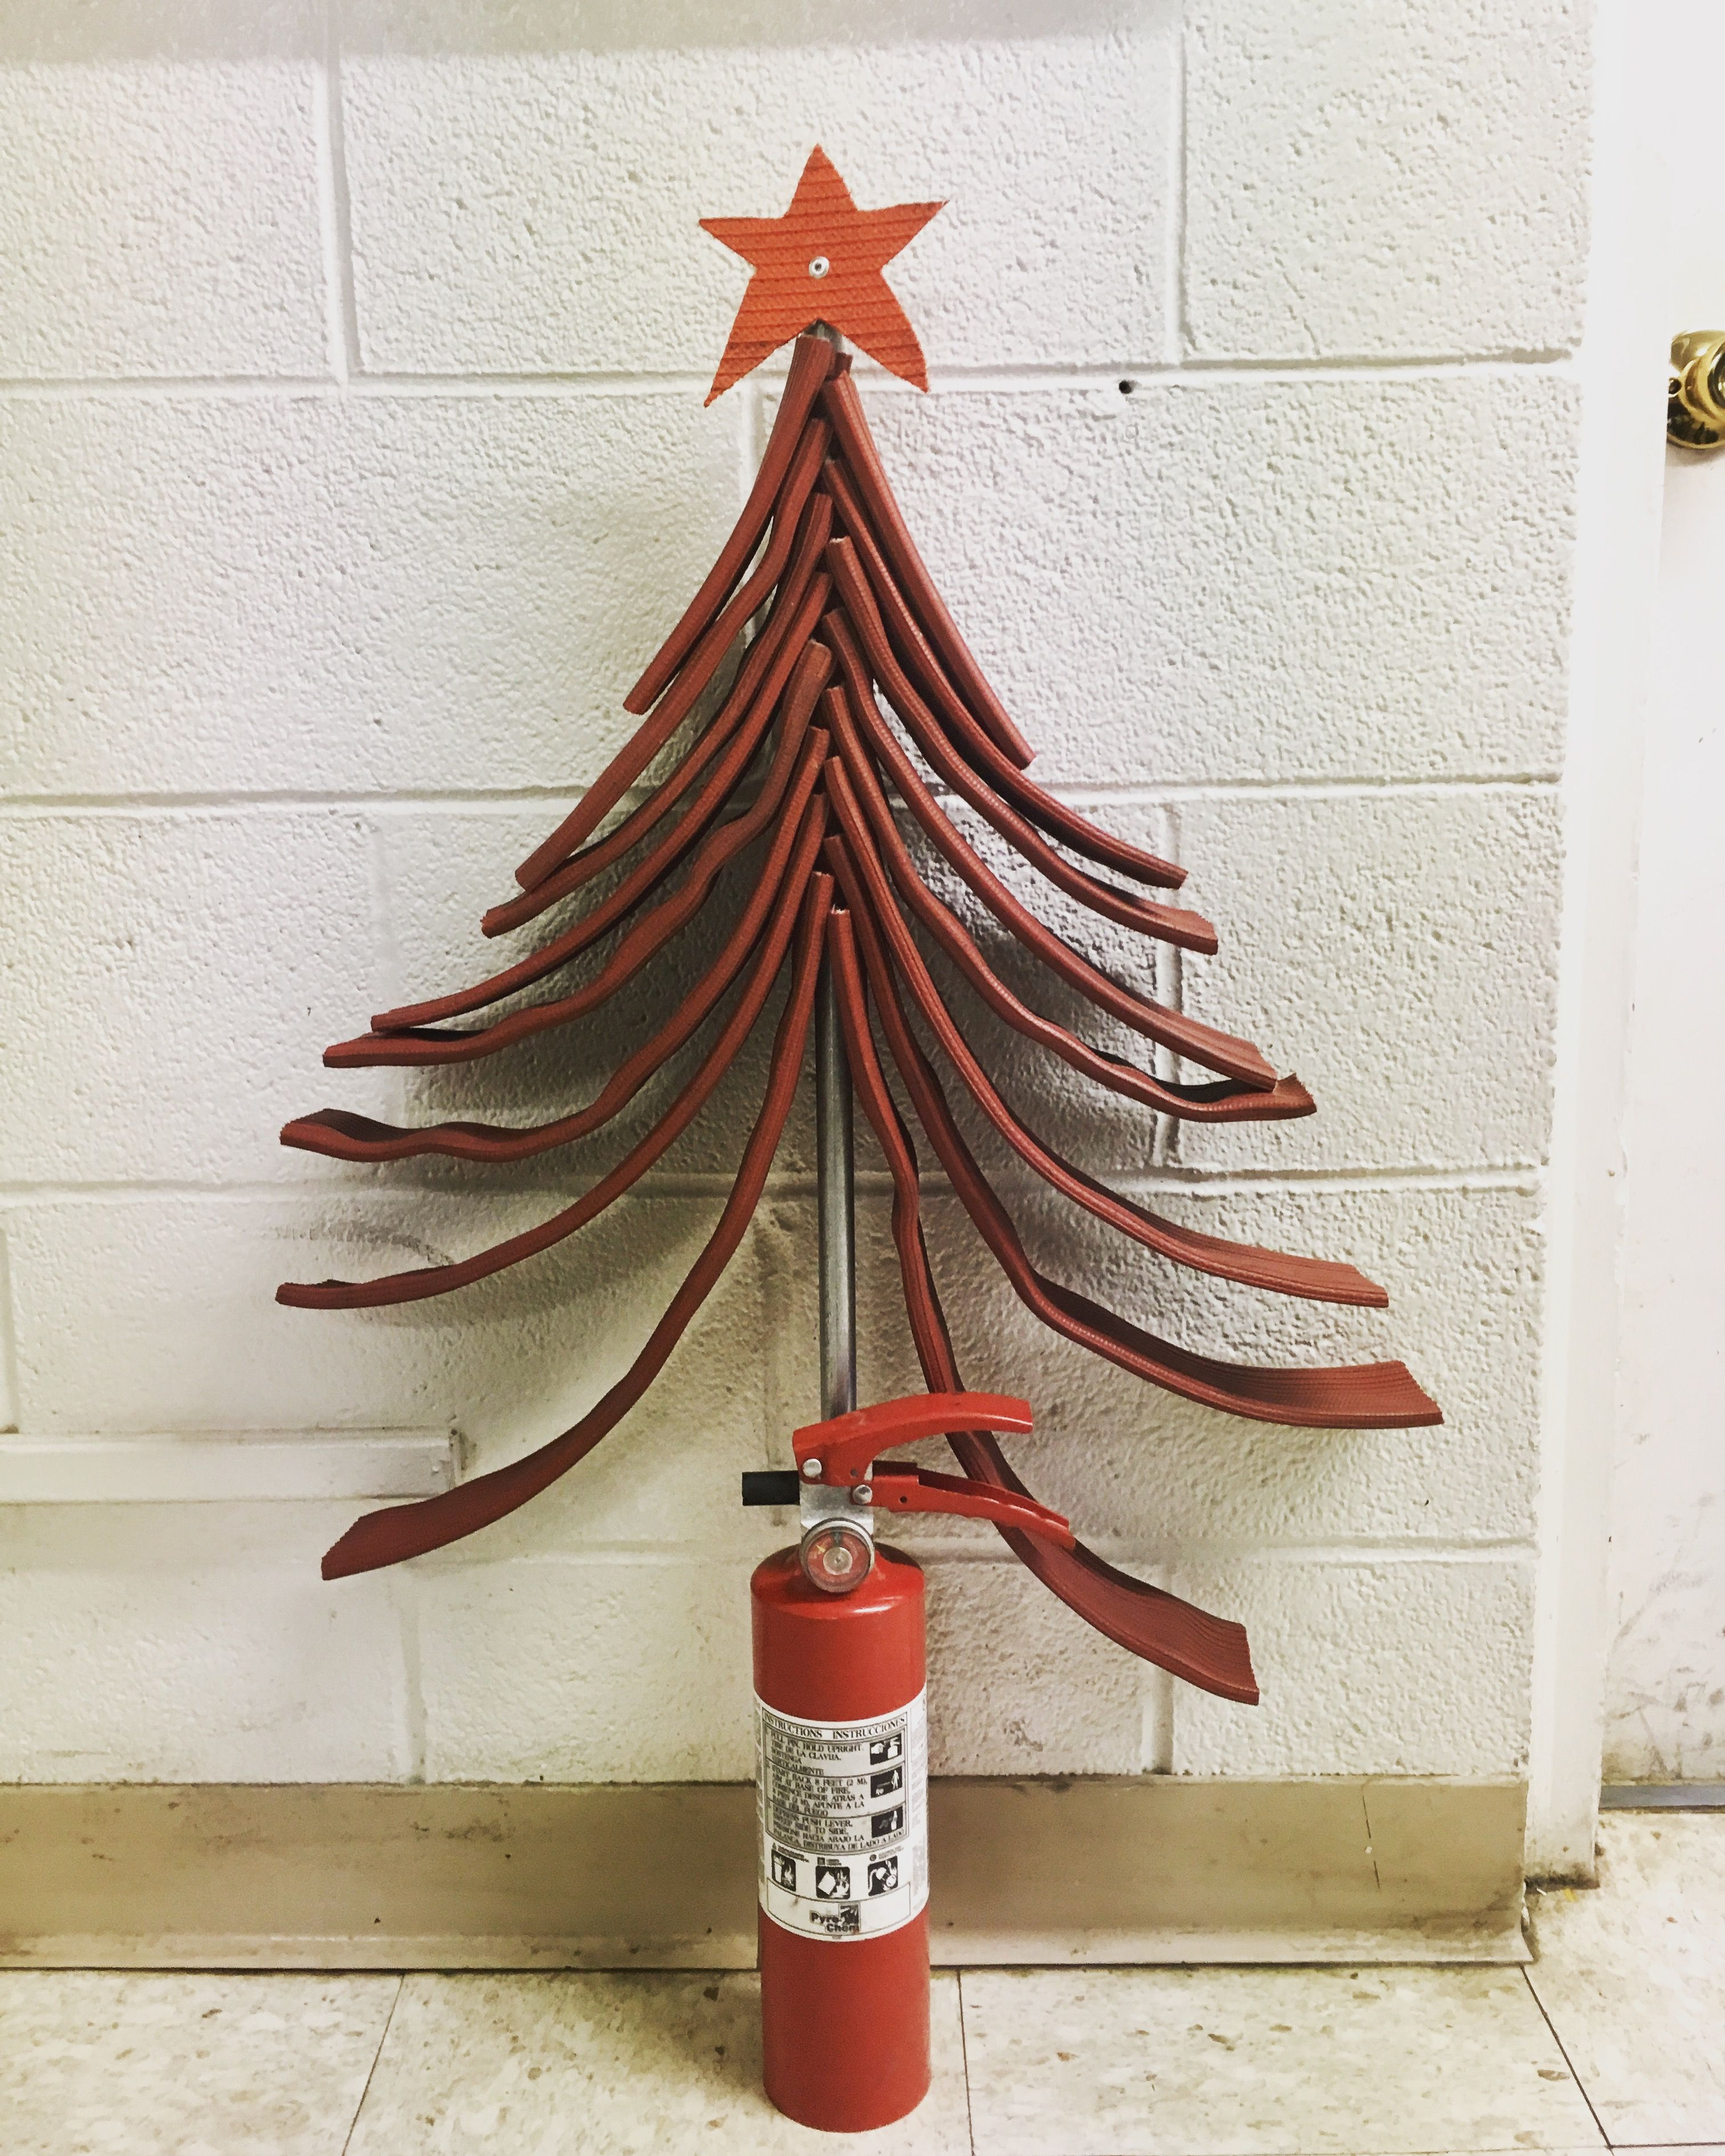 Fire Retardant Spray For Christmas Trees Part - 17: Fire Hose Christmas Tree